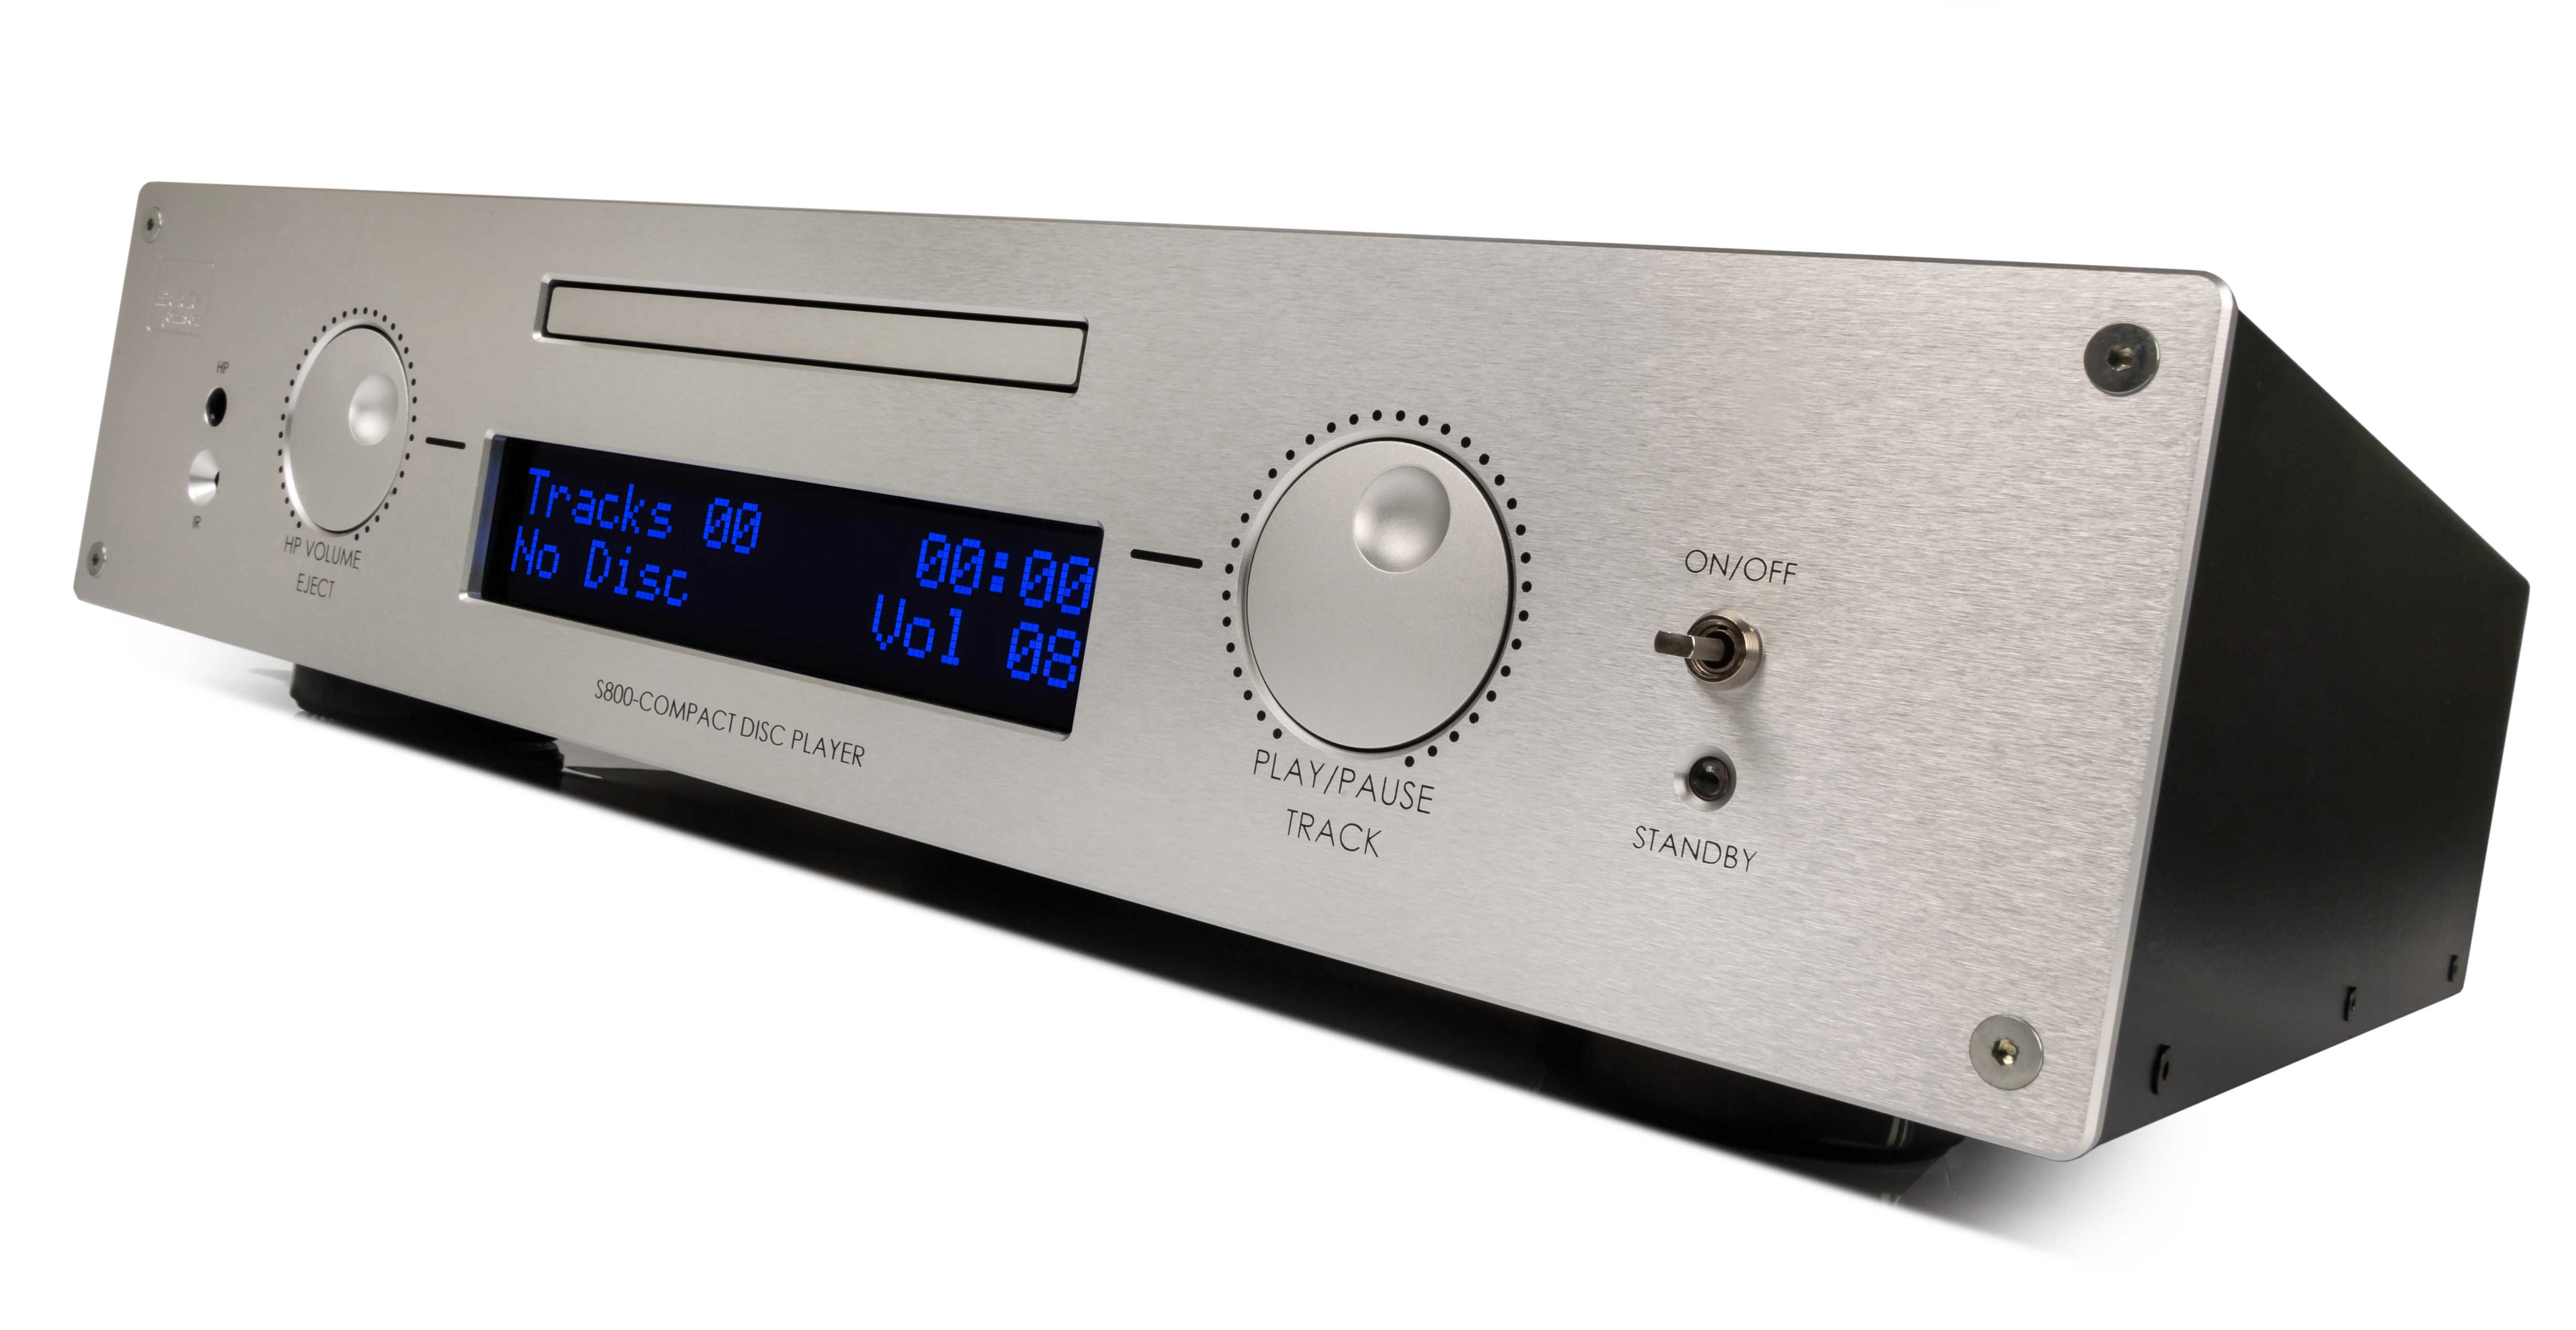 British audio firm Mitchell & Johnson launches CD player